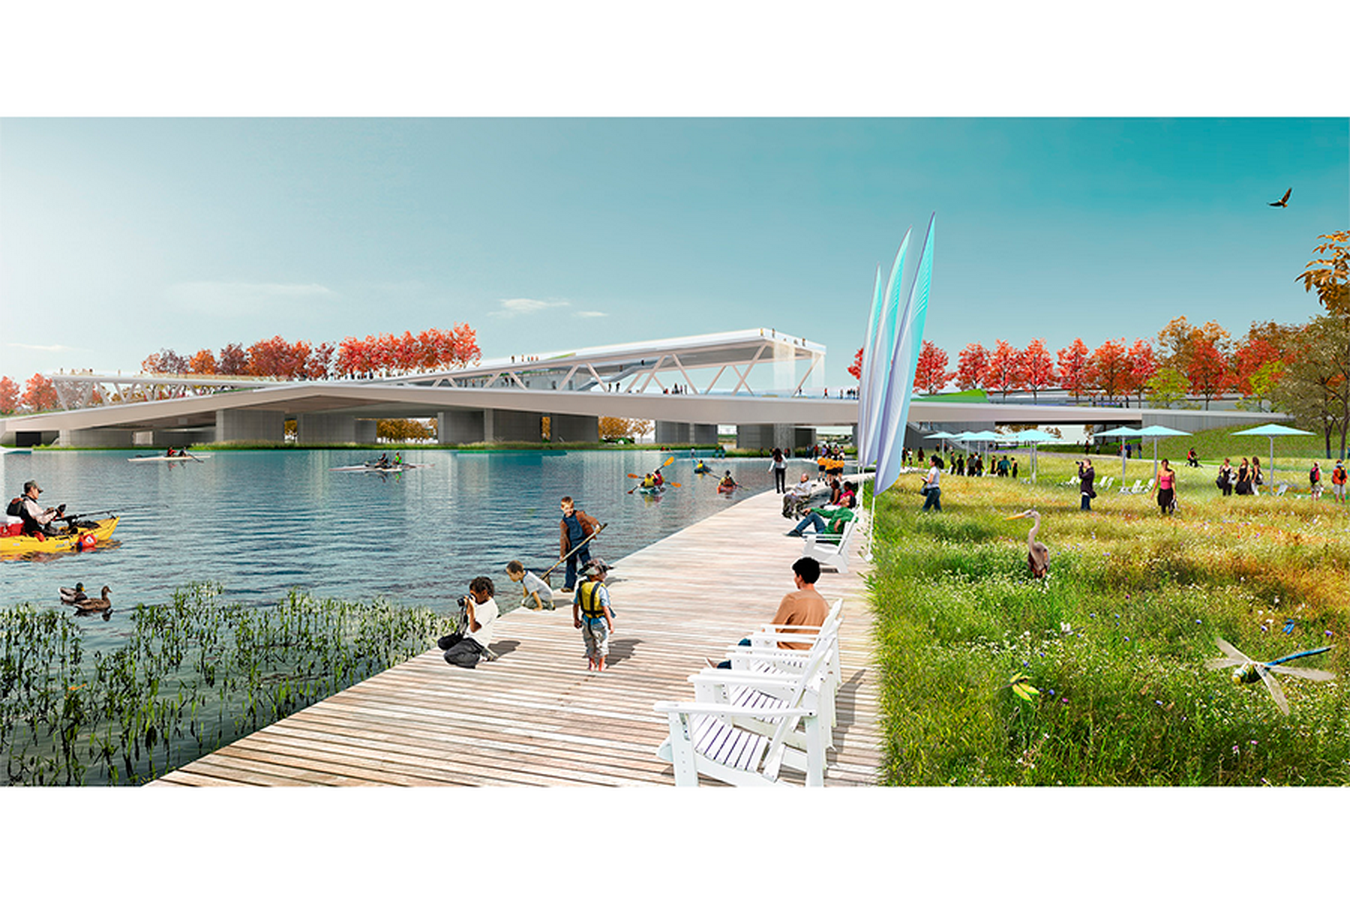 11th Street Bridge Park by Rem Koolhaas: Uniting the divided city - Sheet14